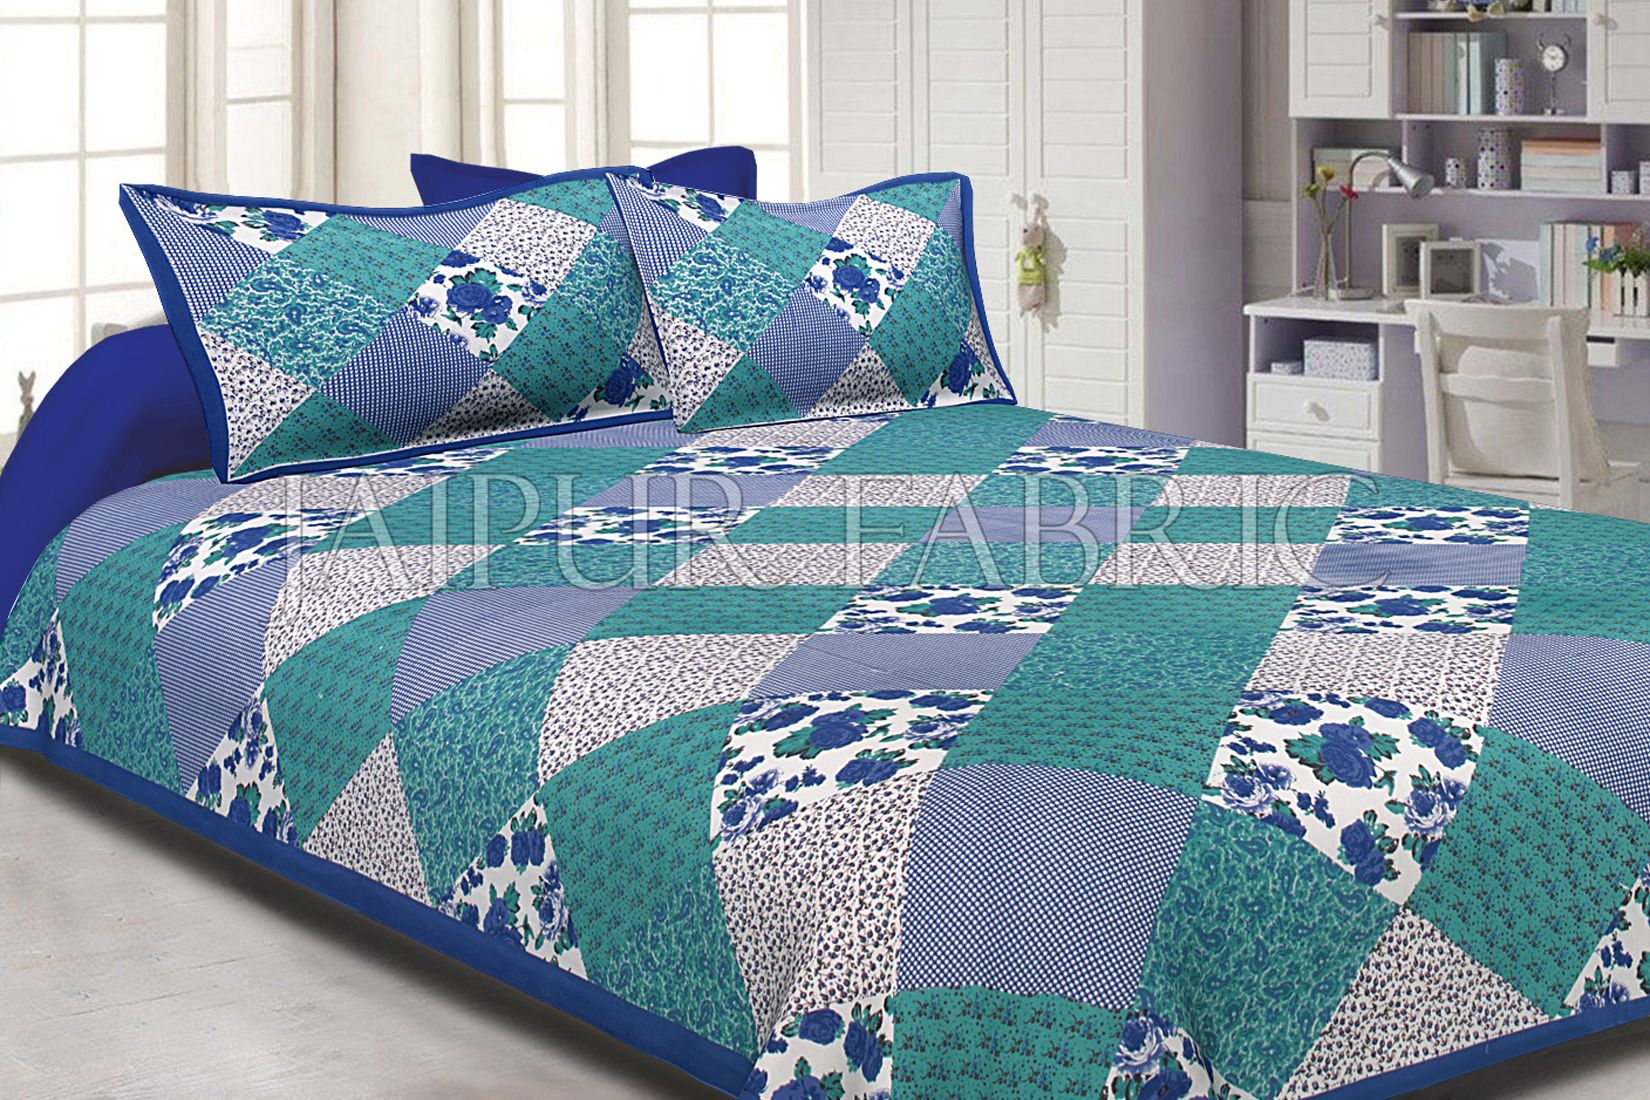 Blue Border Multicolor Base Flower Screen Print Cotton Double Bed Sheet